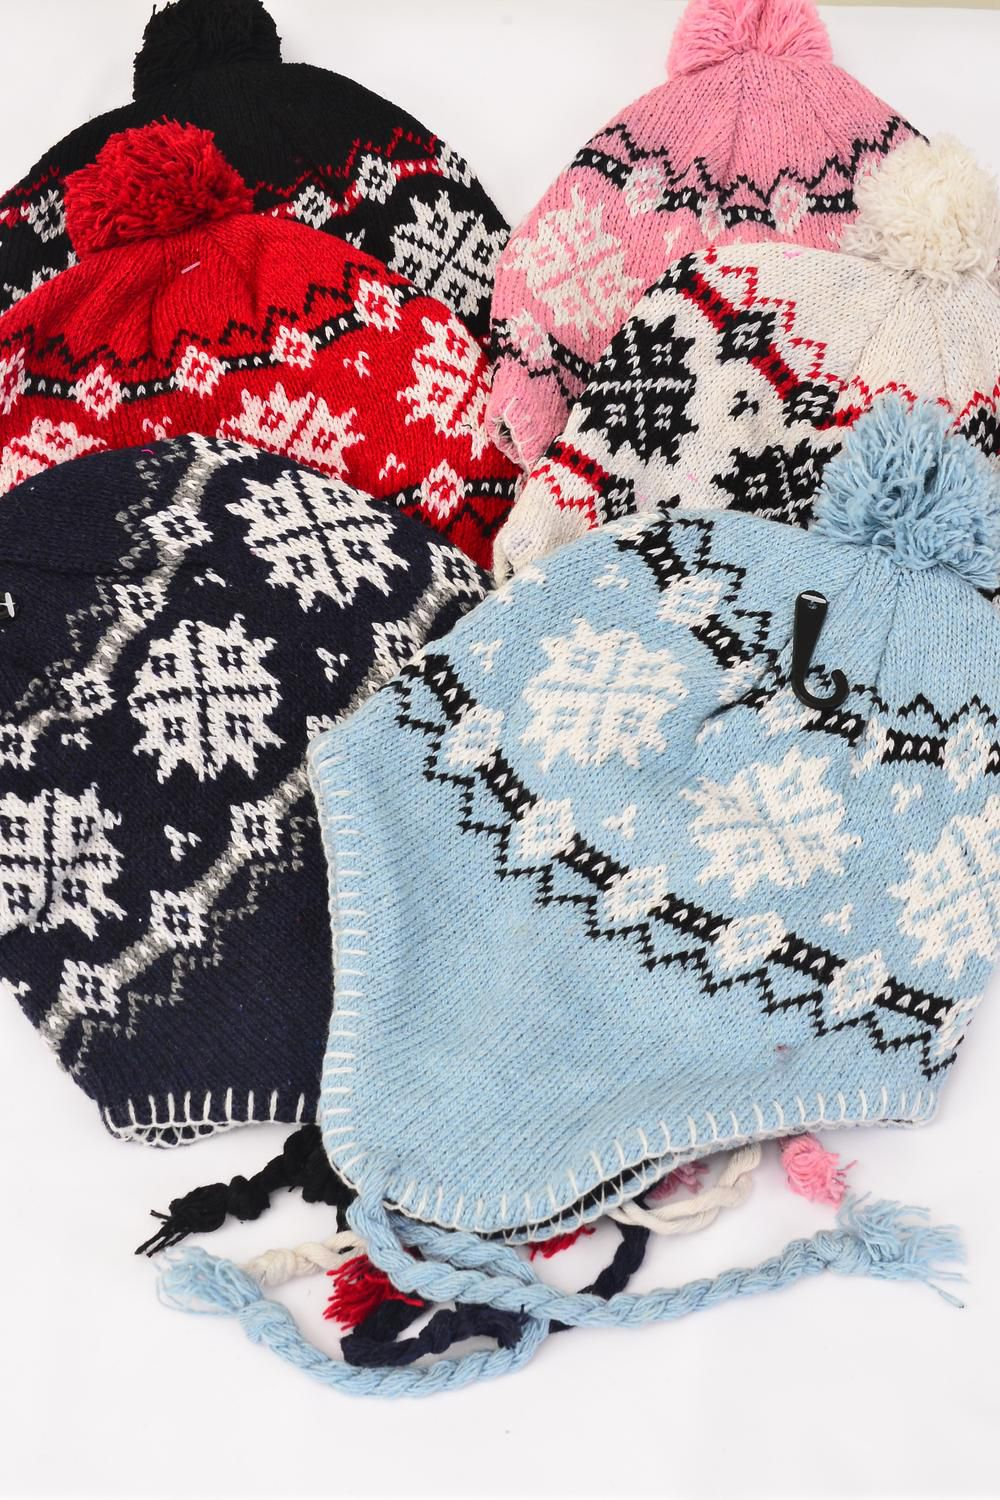 Knit Cap Snow Flake Head Wear Fleece For Kids/DZ Colors-2 Pink,2 Blue,2 Navy,2 Red,2 White,2 Black,6 color Asst,OPP Bag & UPC Code -